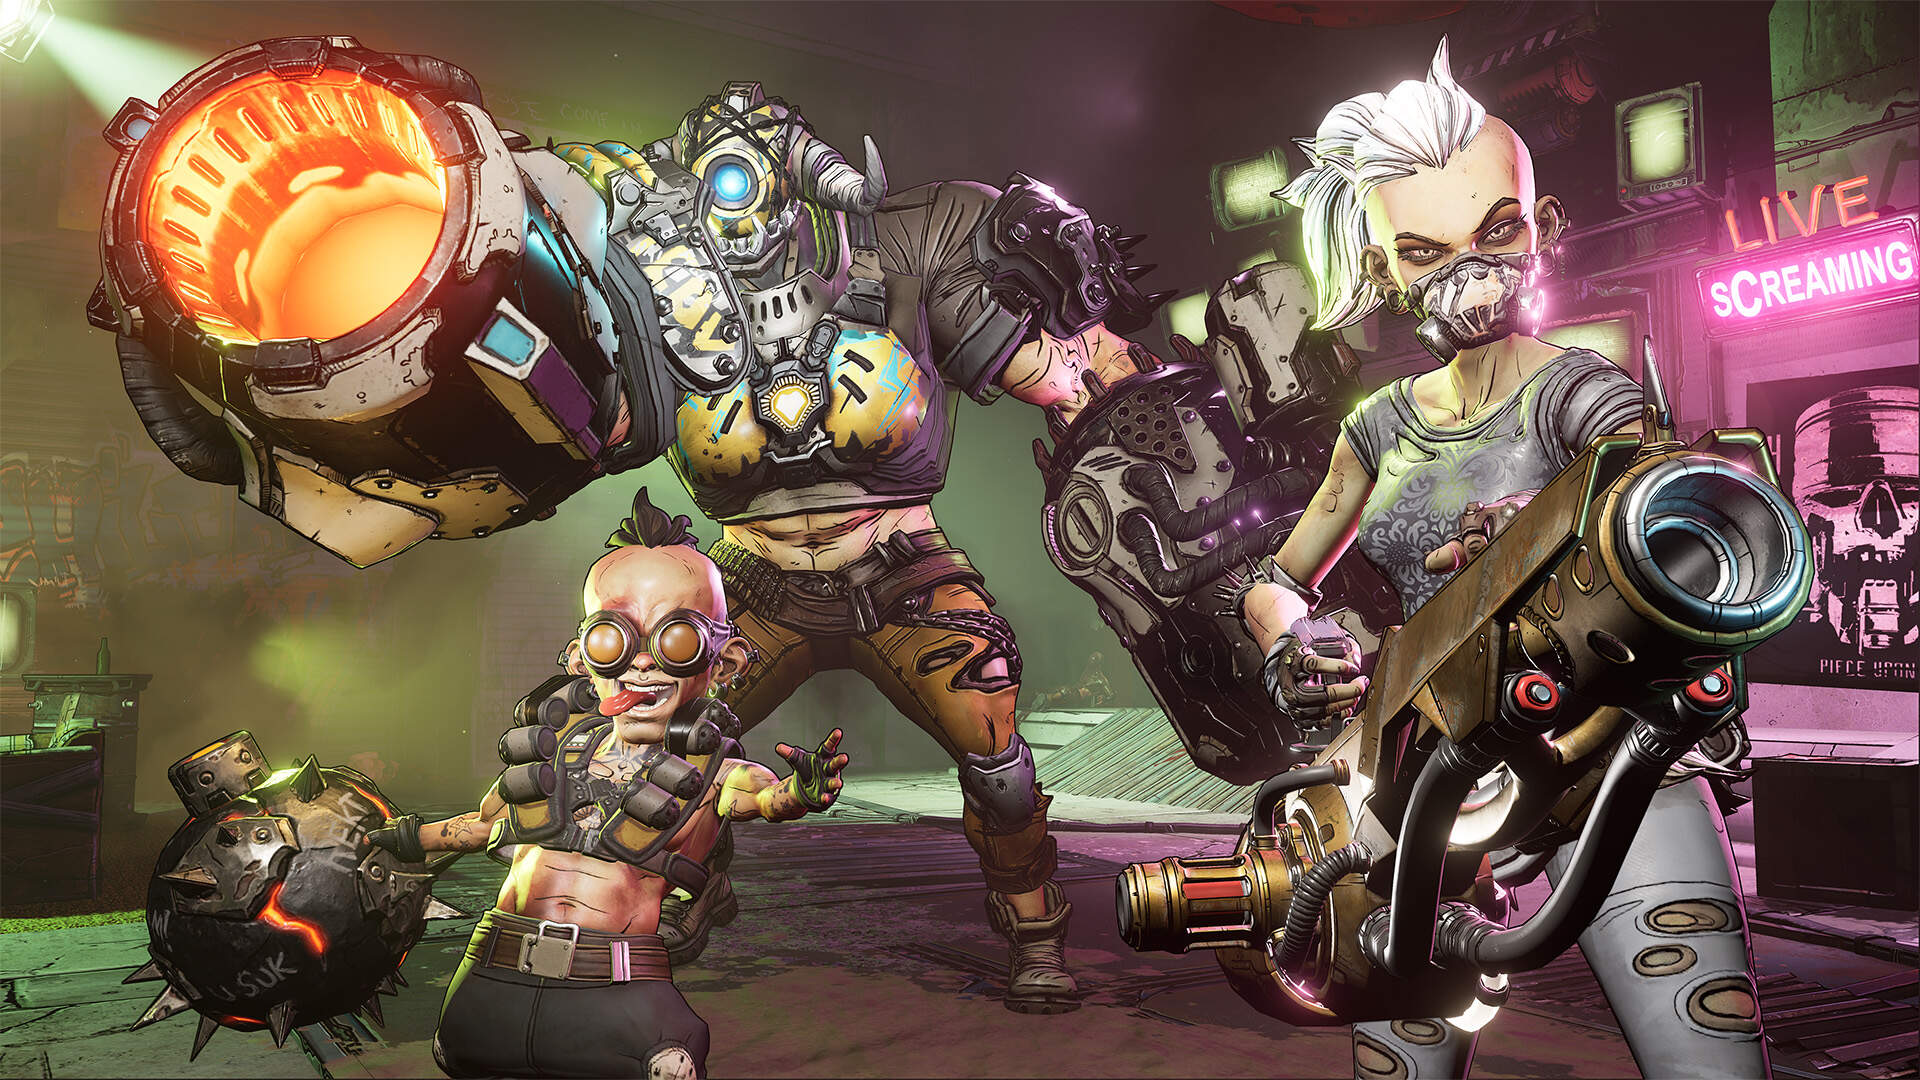 Take-Two Butts Heads With Borderlands 3 YouTuber Over Leaked Information